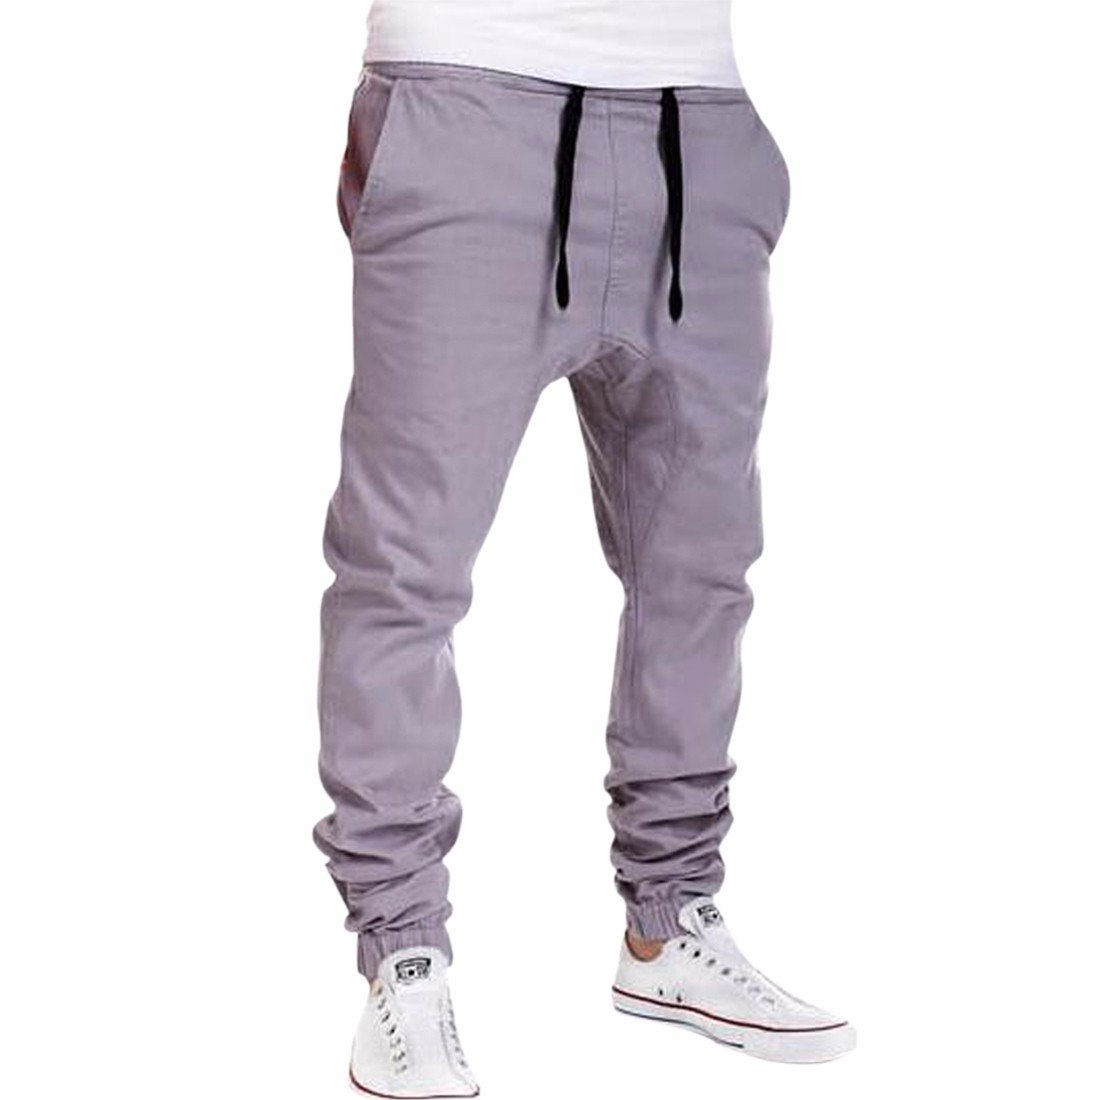 Mens Casual Jogger Sportwear Baggy Harem Pants Slacks Trousers Sweatpants Slim E6051S0146